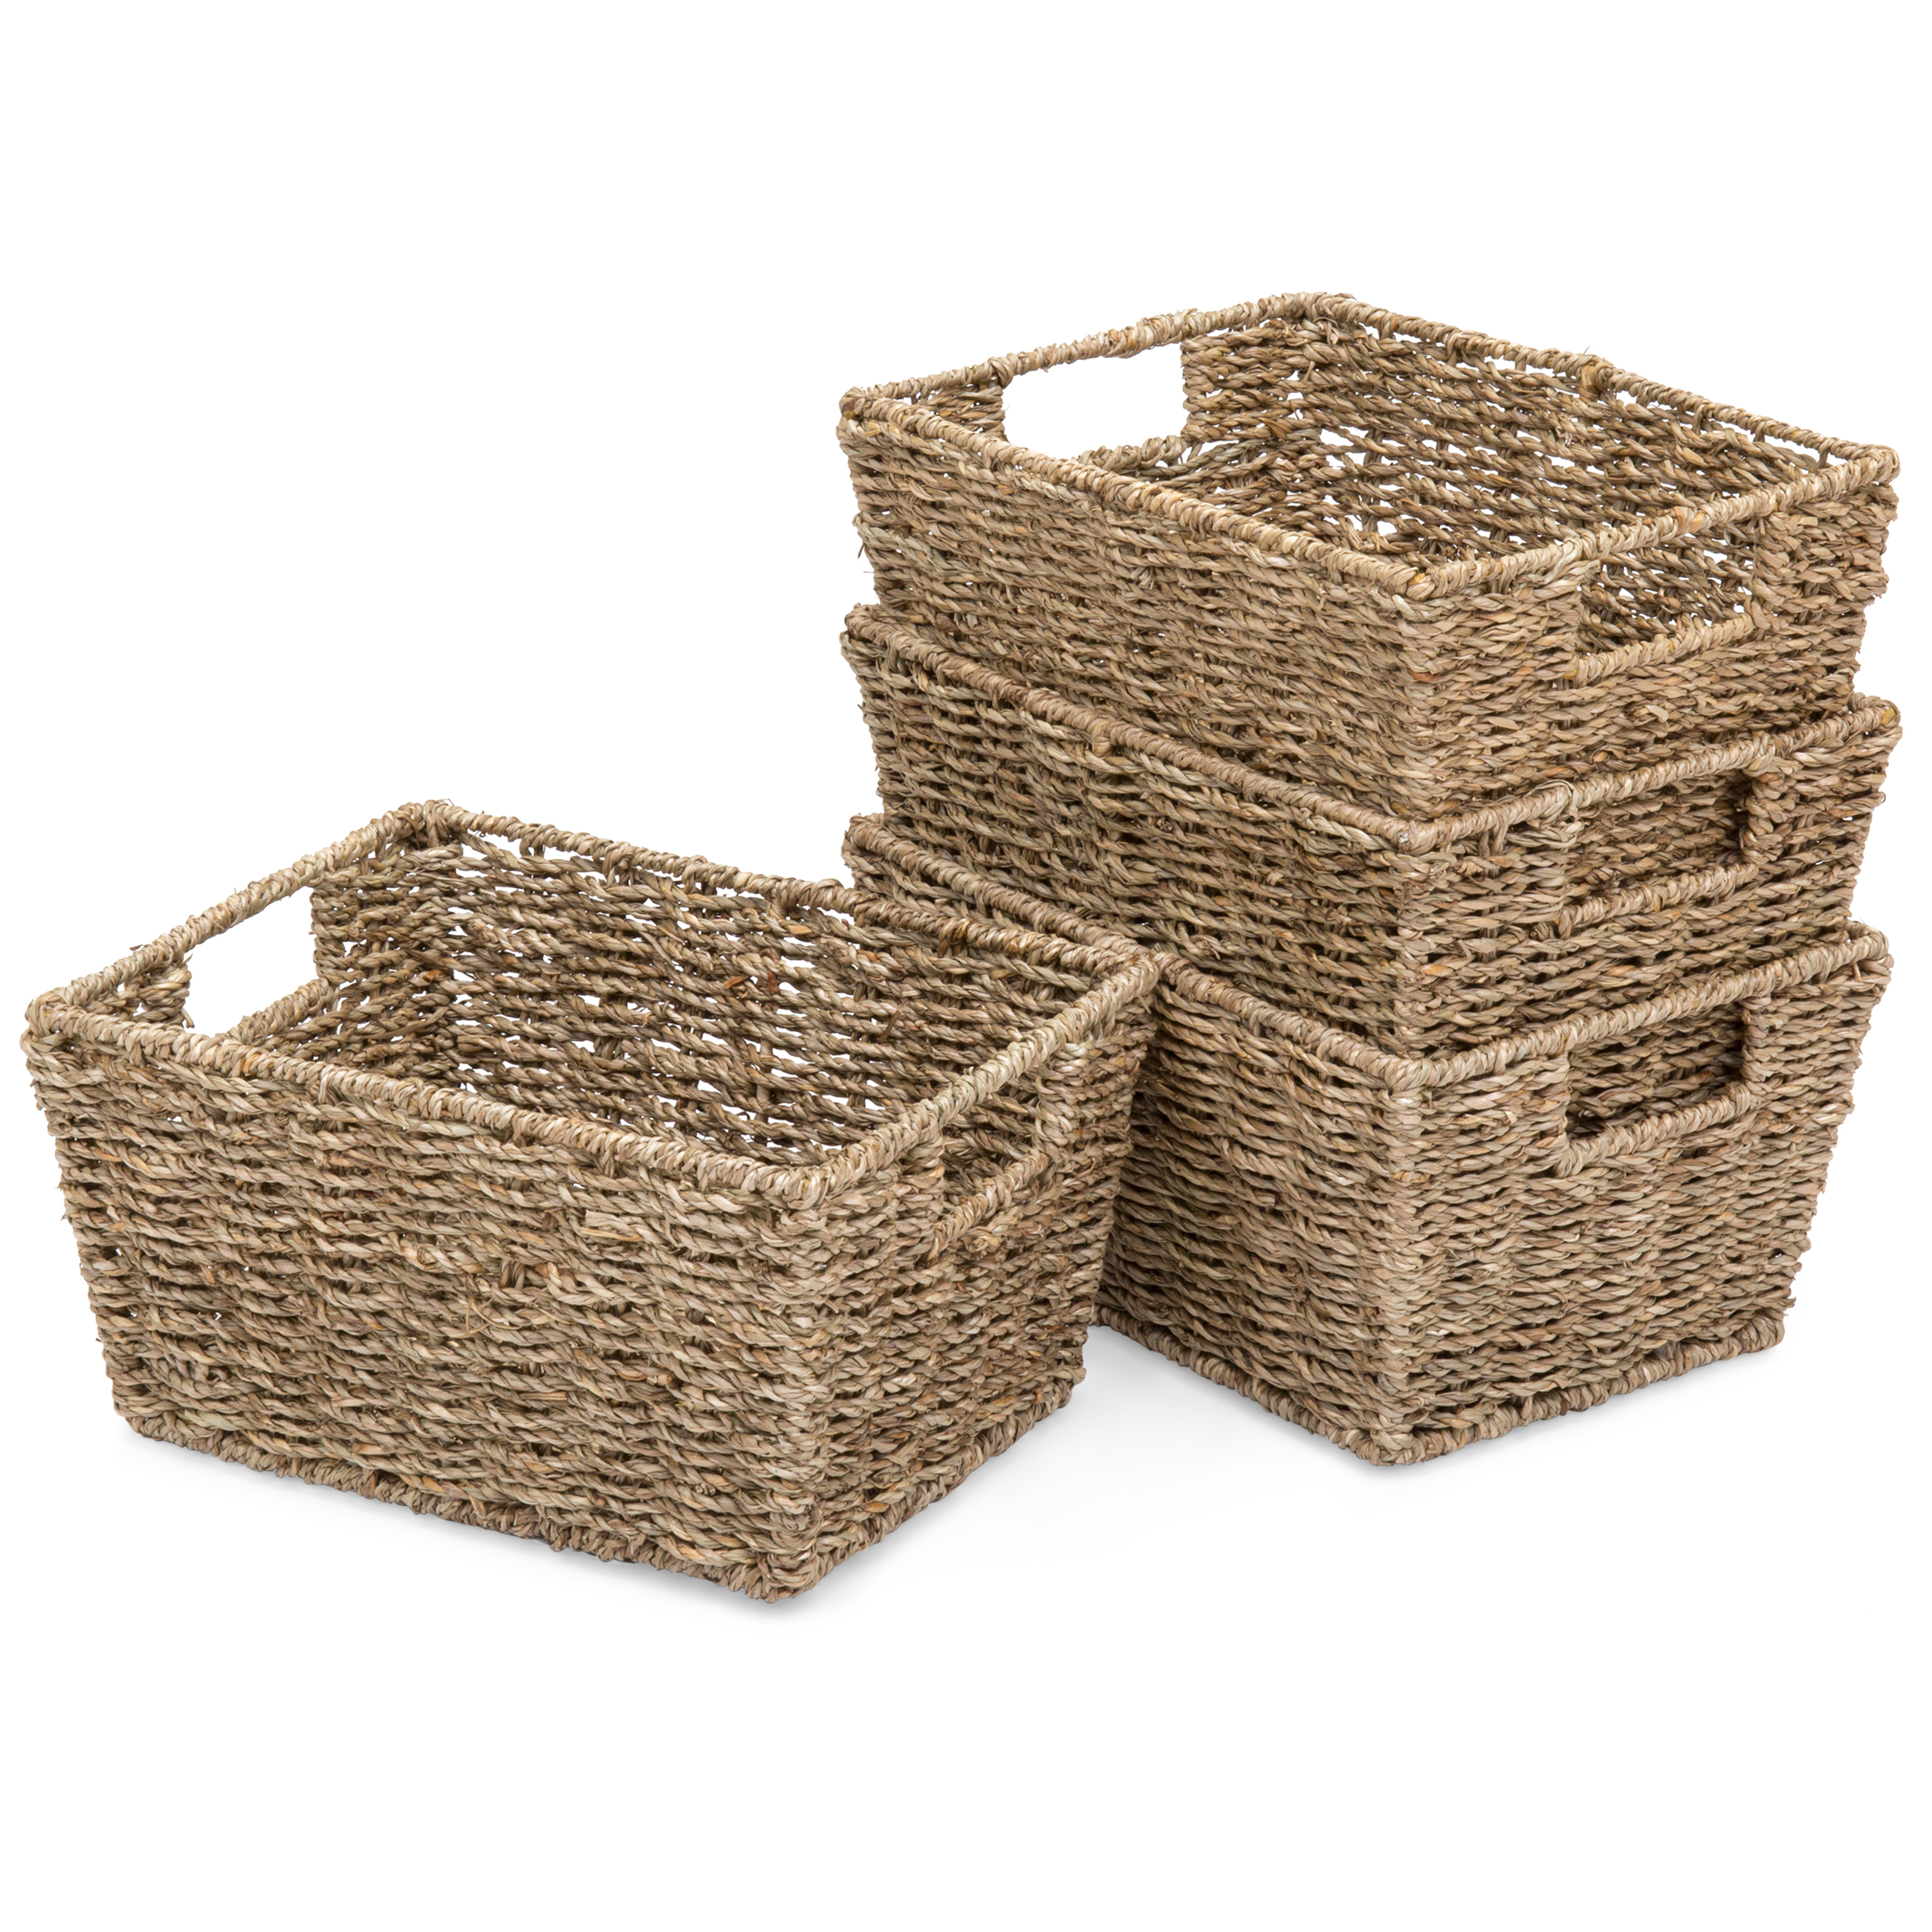 Best Choice Products Set of 4 Seagrass Storage, Laundry, Kids, Home Organizer Baskets w/ Insert Handles